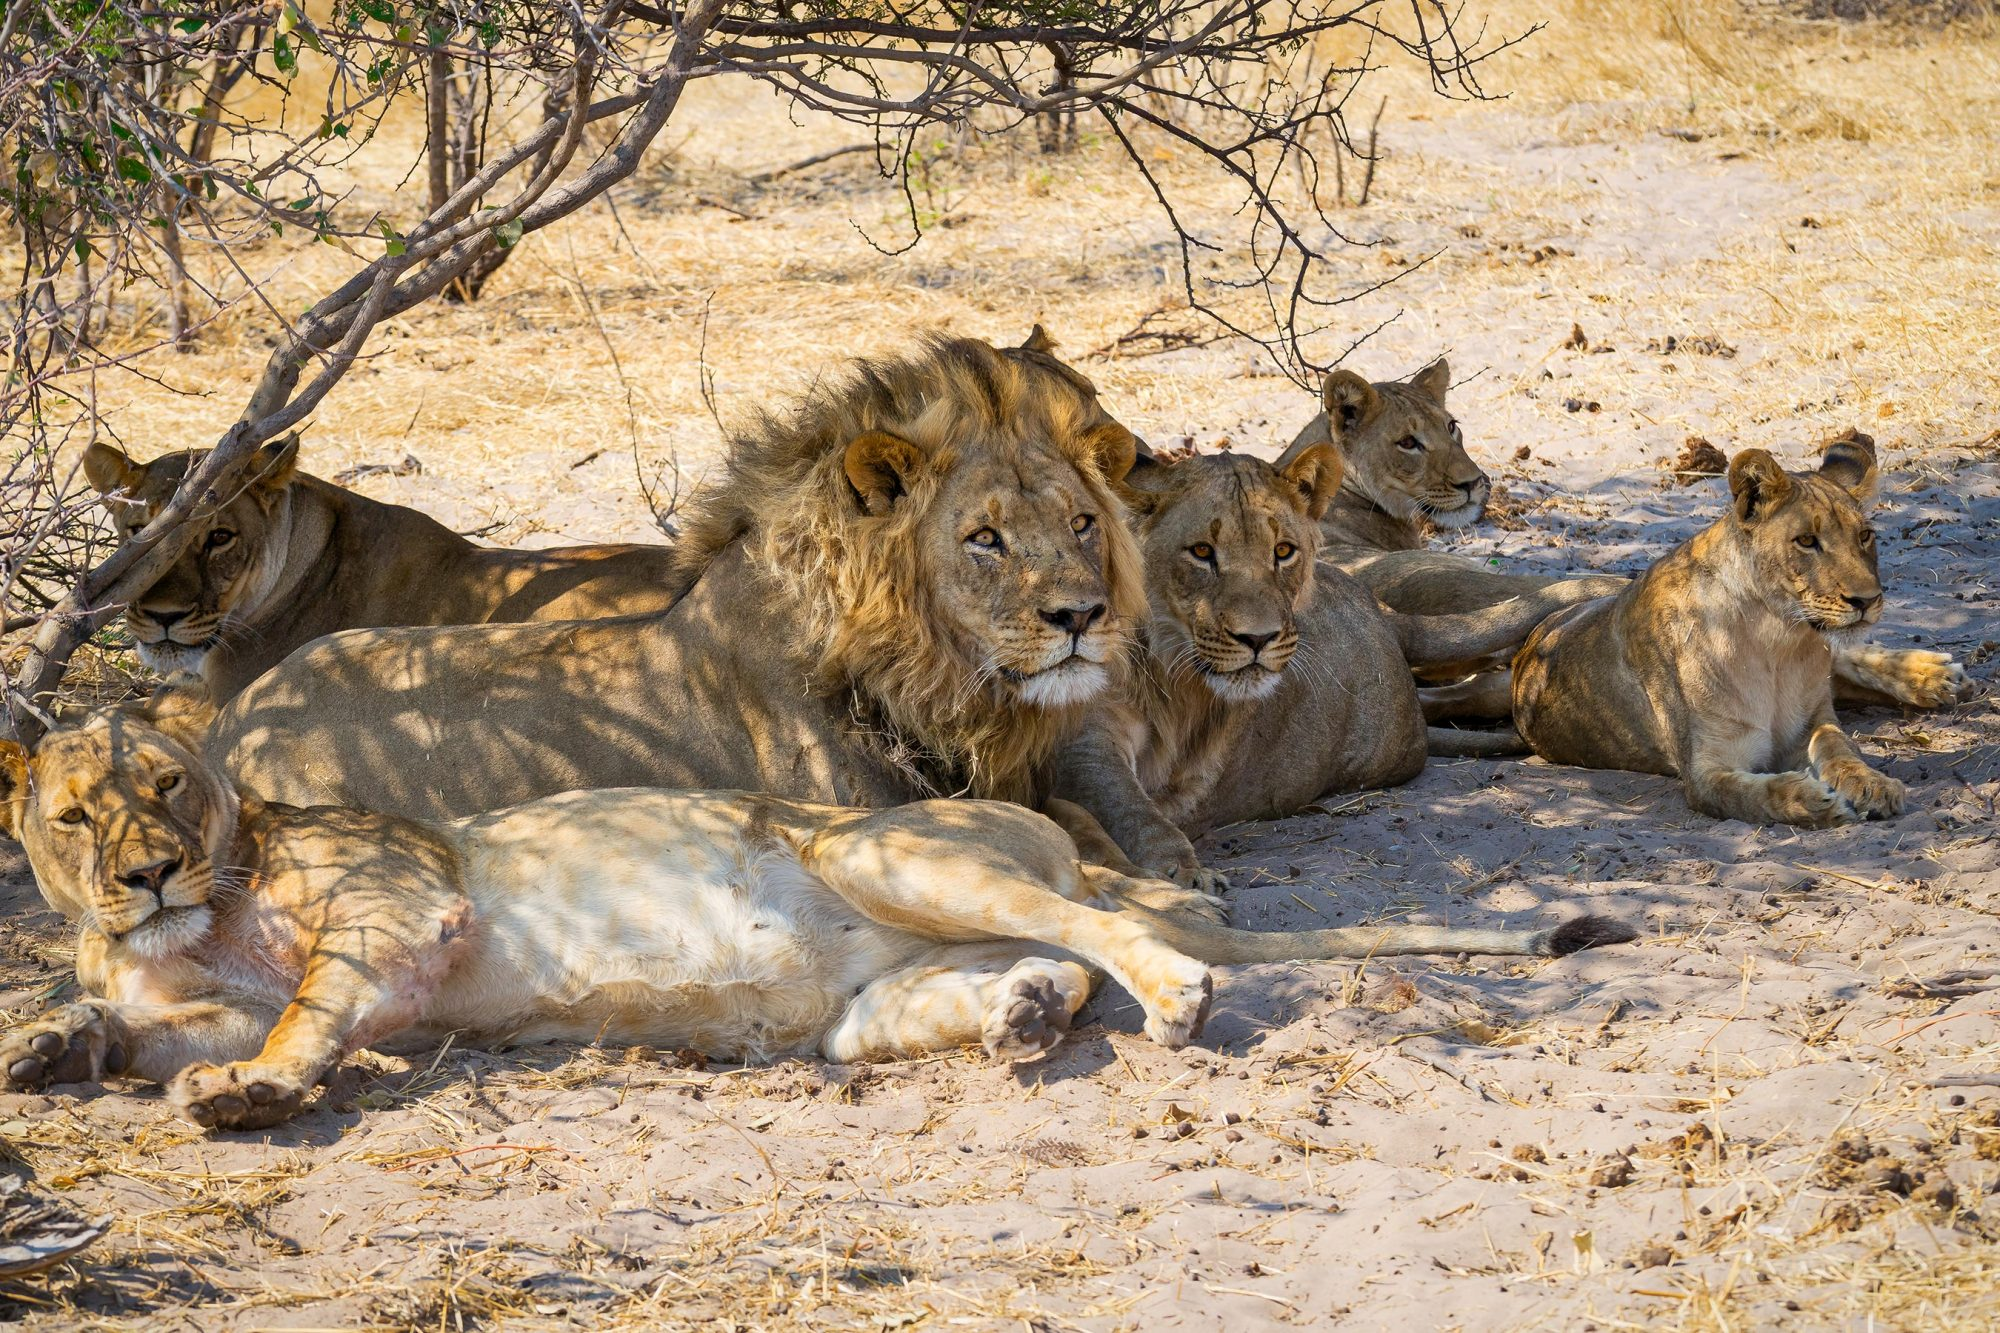 Pride of lions resting under a tree, Makgadikgadi Pans National Park, Botswana